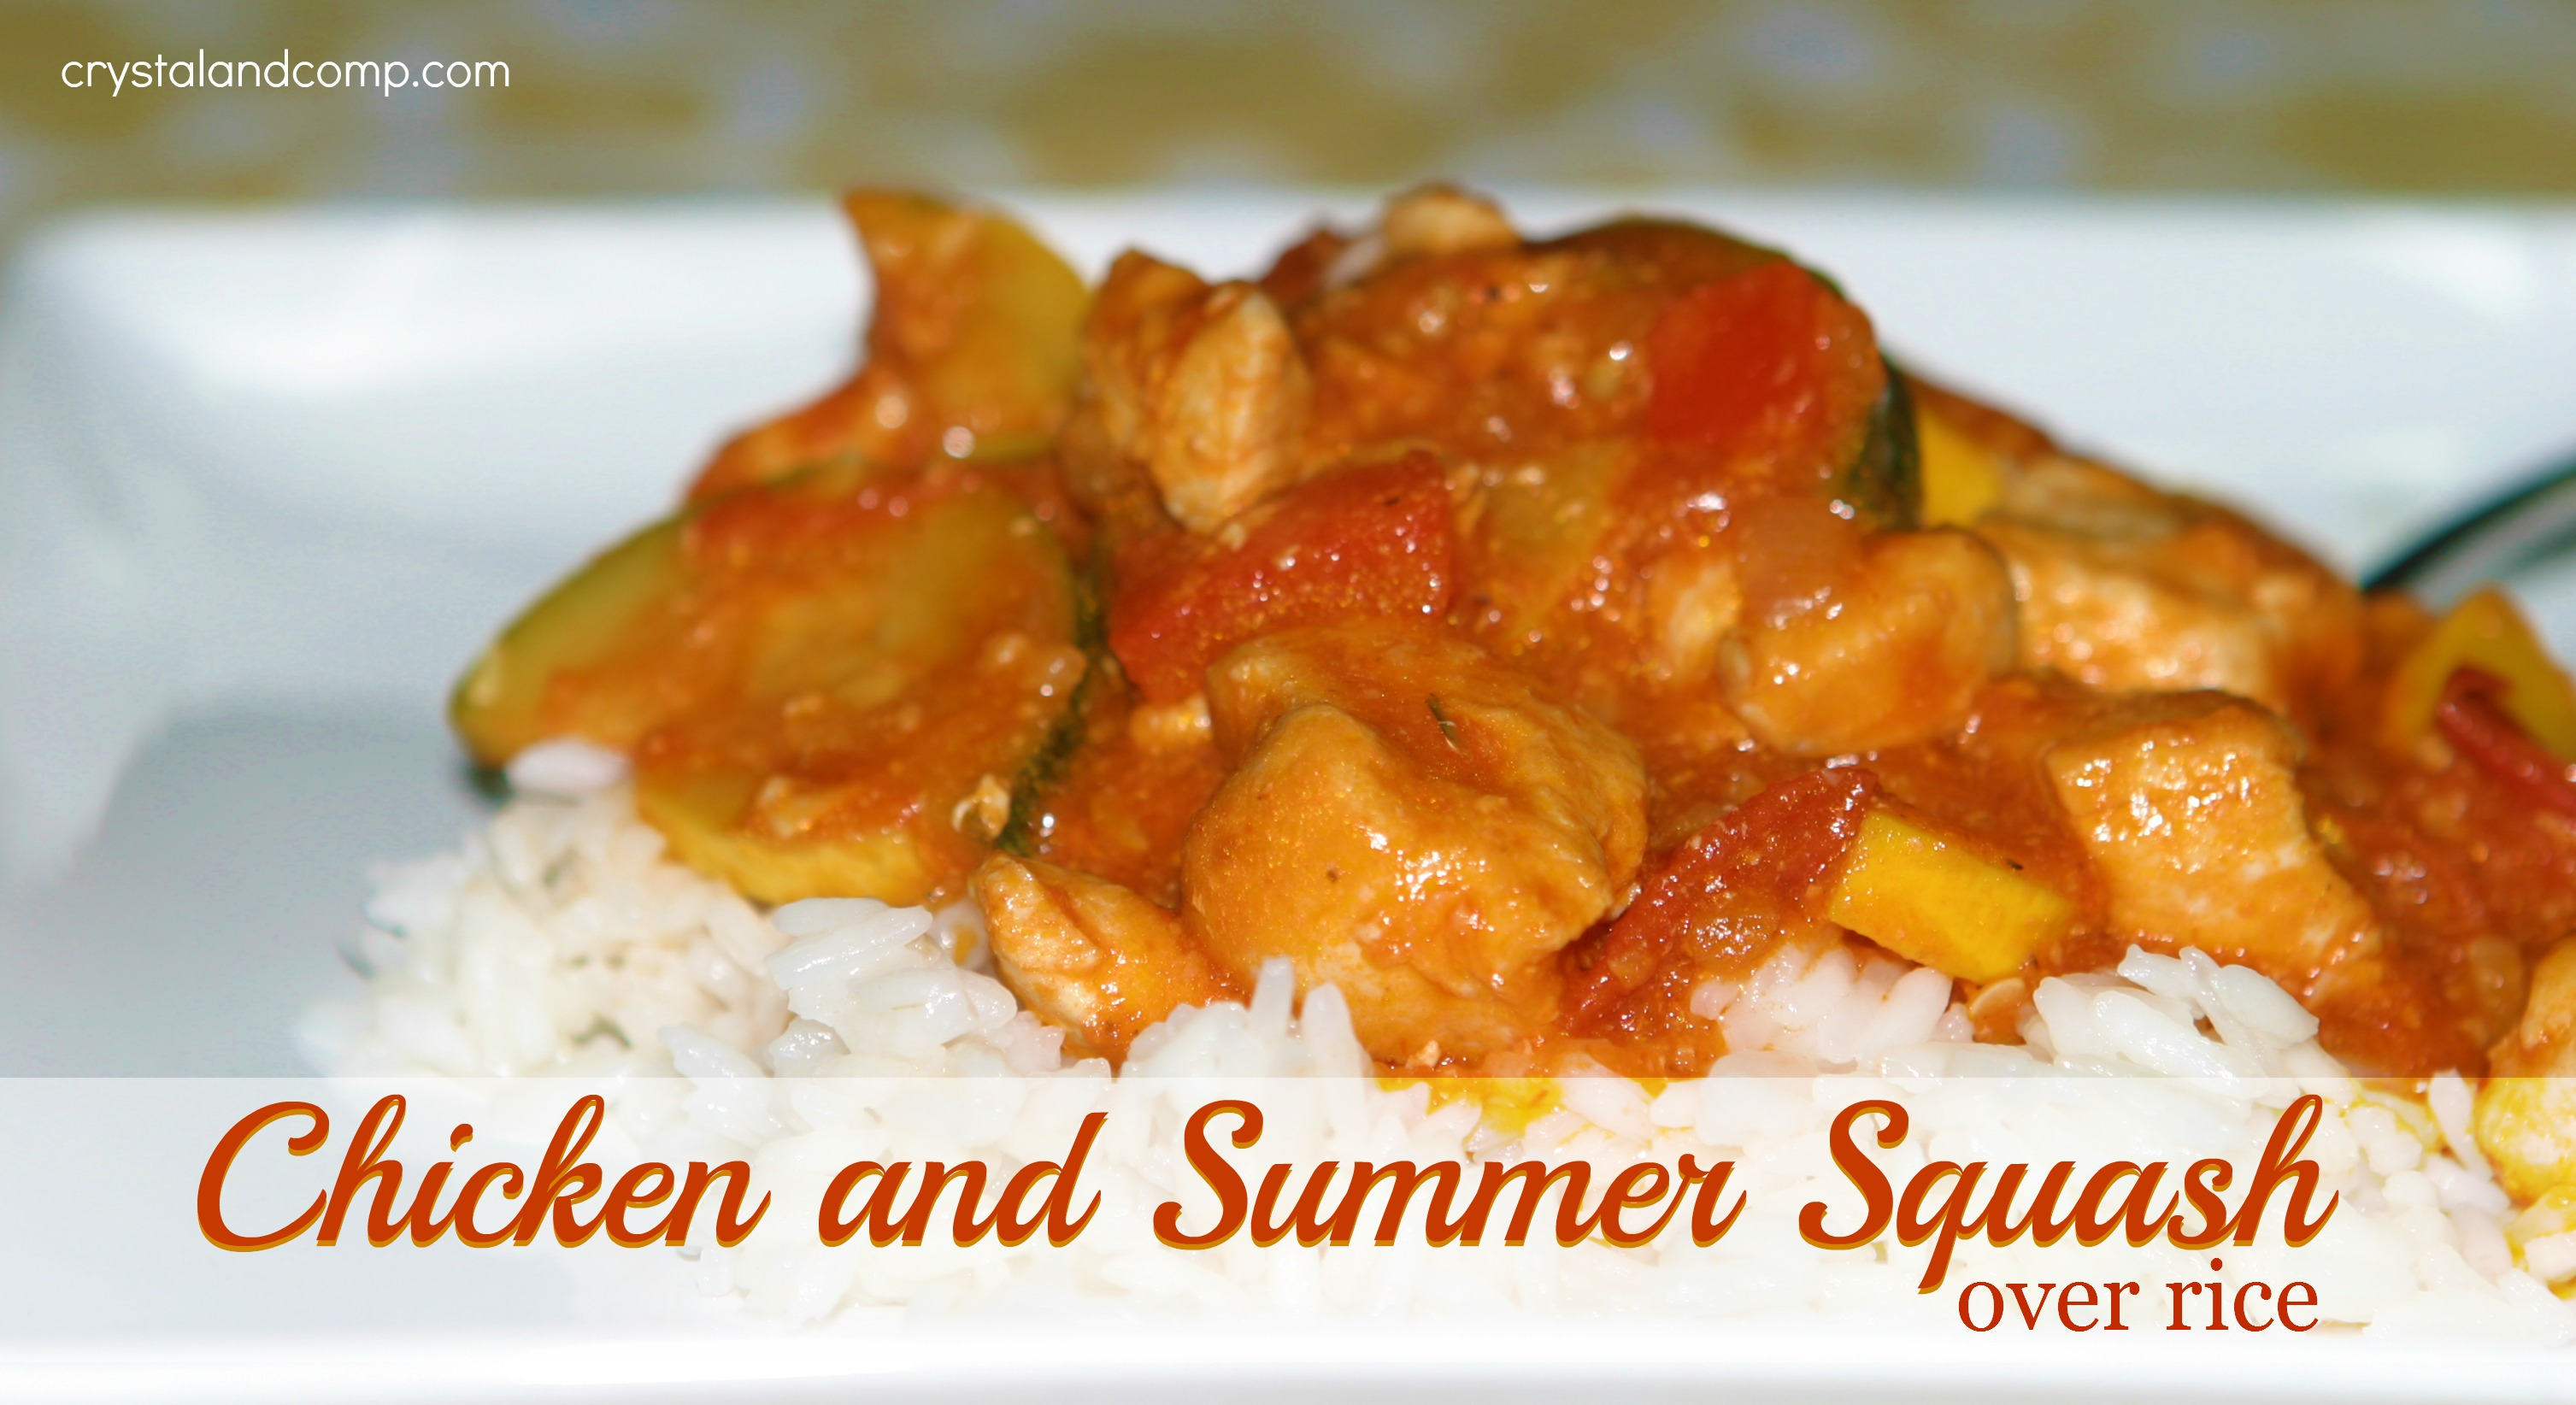 Easy Recipes Chicken And Summer Squash Over Rice